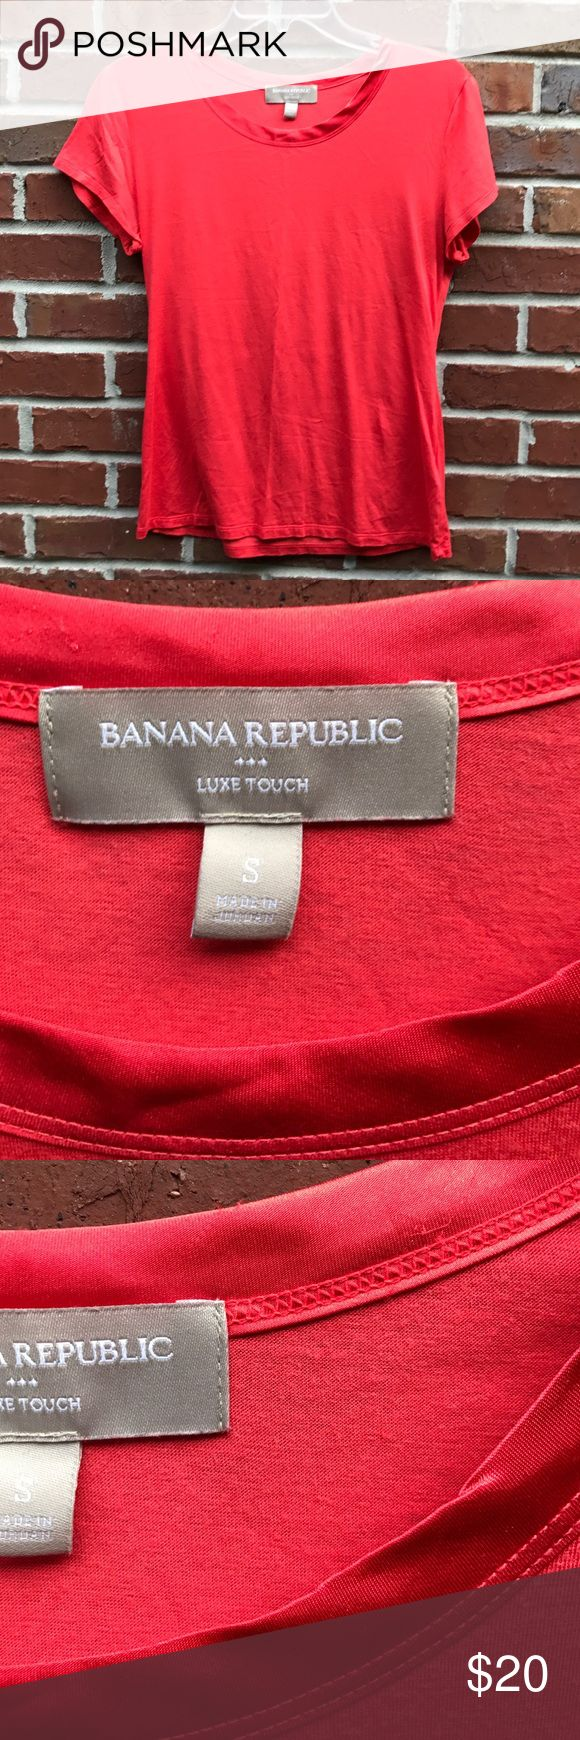 💖 Banana Republic Luxe Touch Tshirt Watermelon S 💖 Banana Republic Luxe Touch Tshirt Watermelon S. Super soft Tshirt with satiny trim around the neck Banana Republic Tops Tees - Short Sleeve